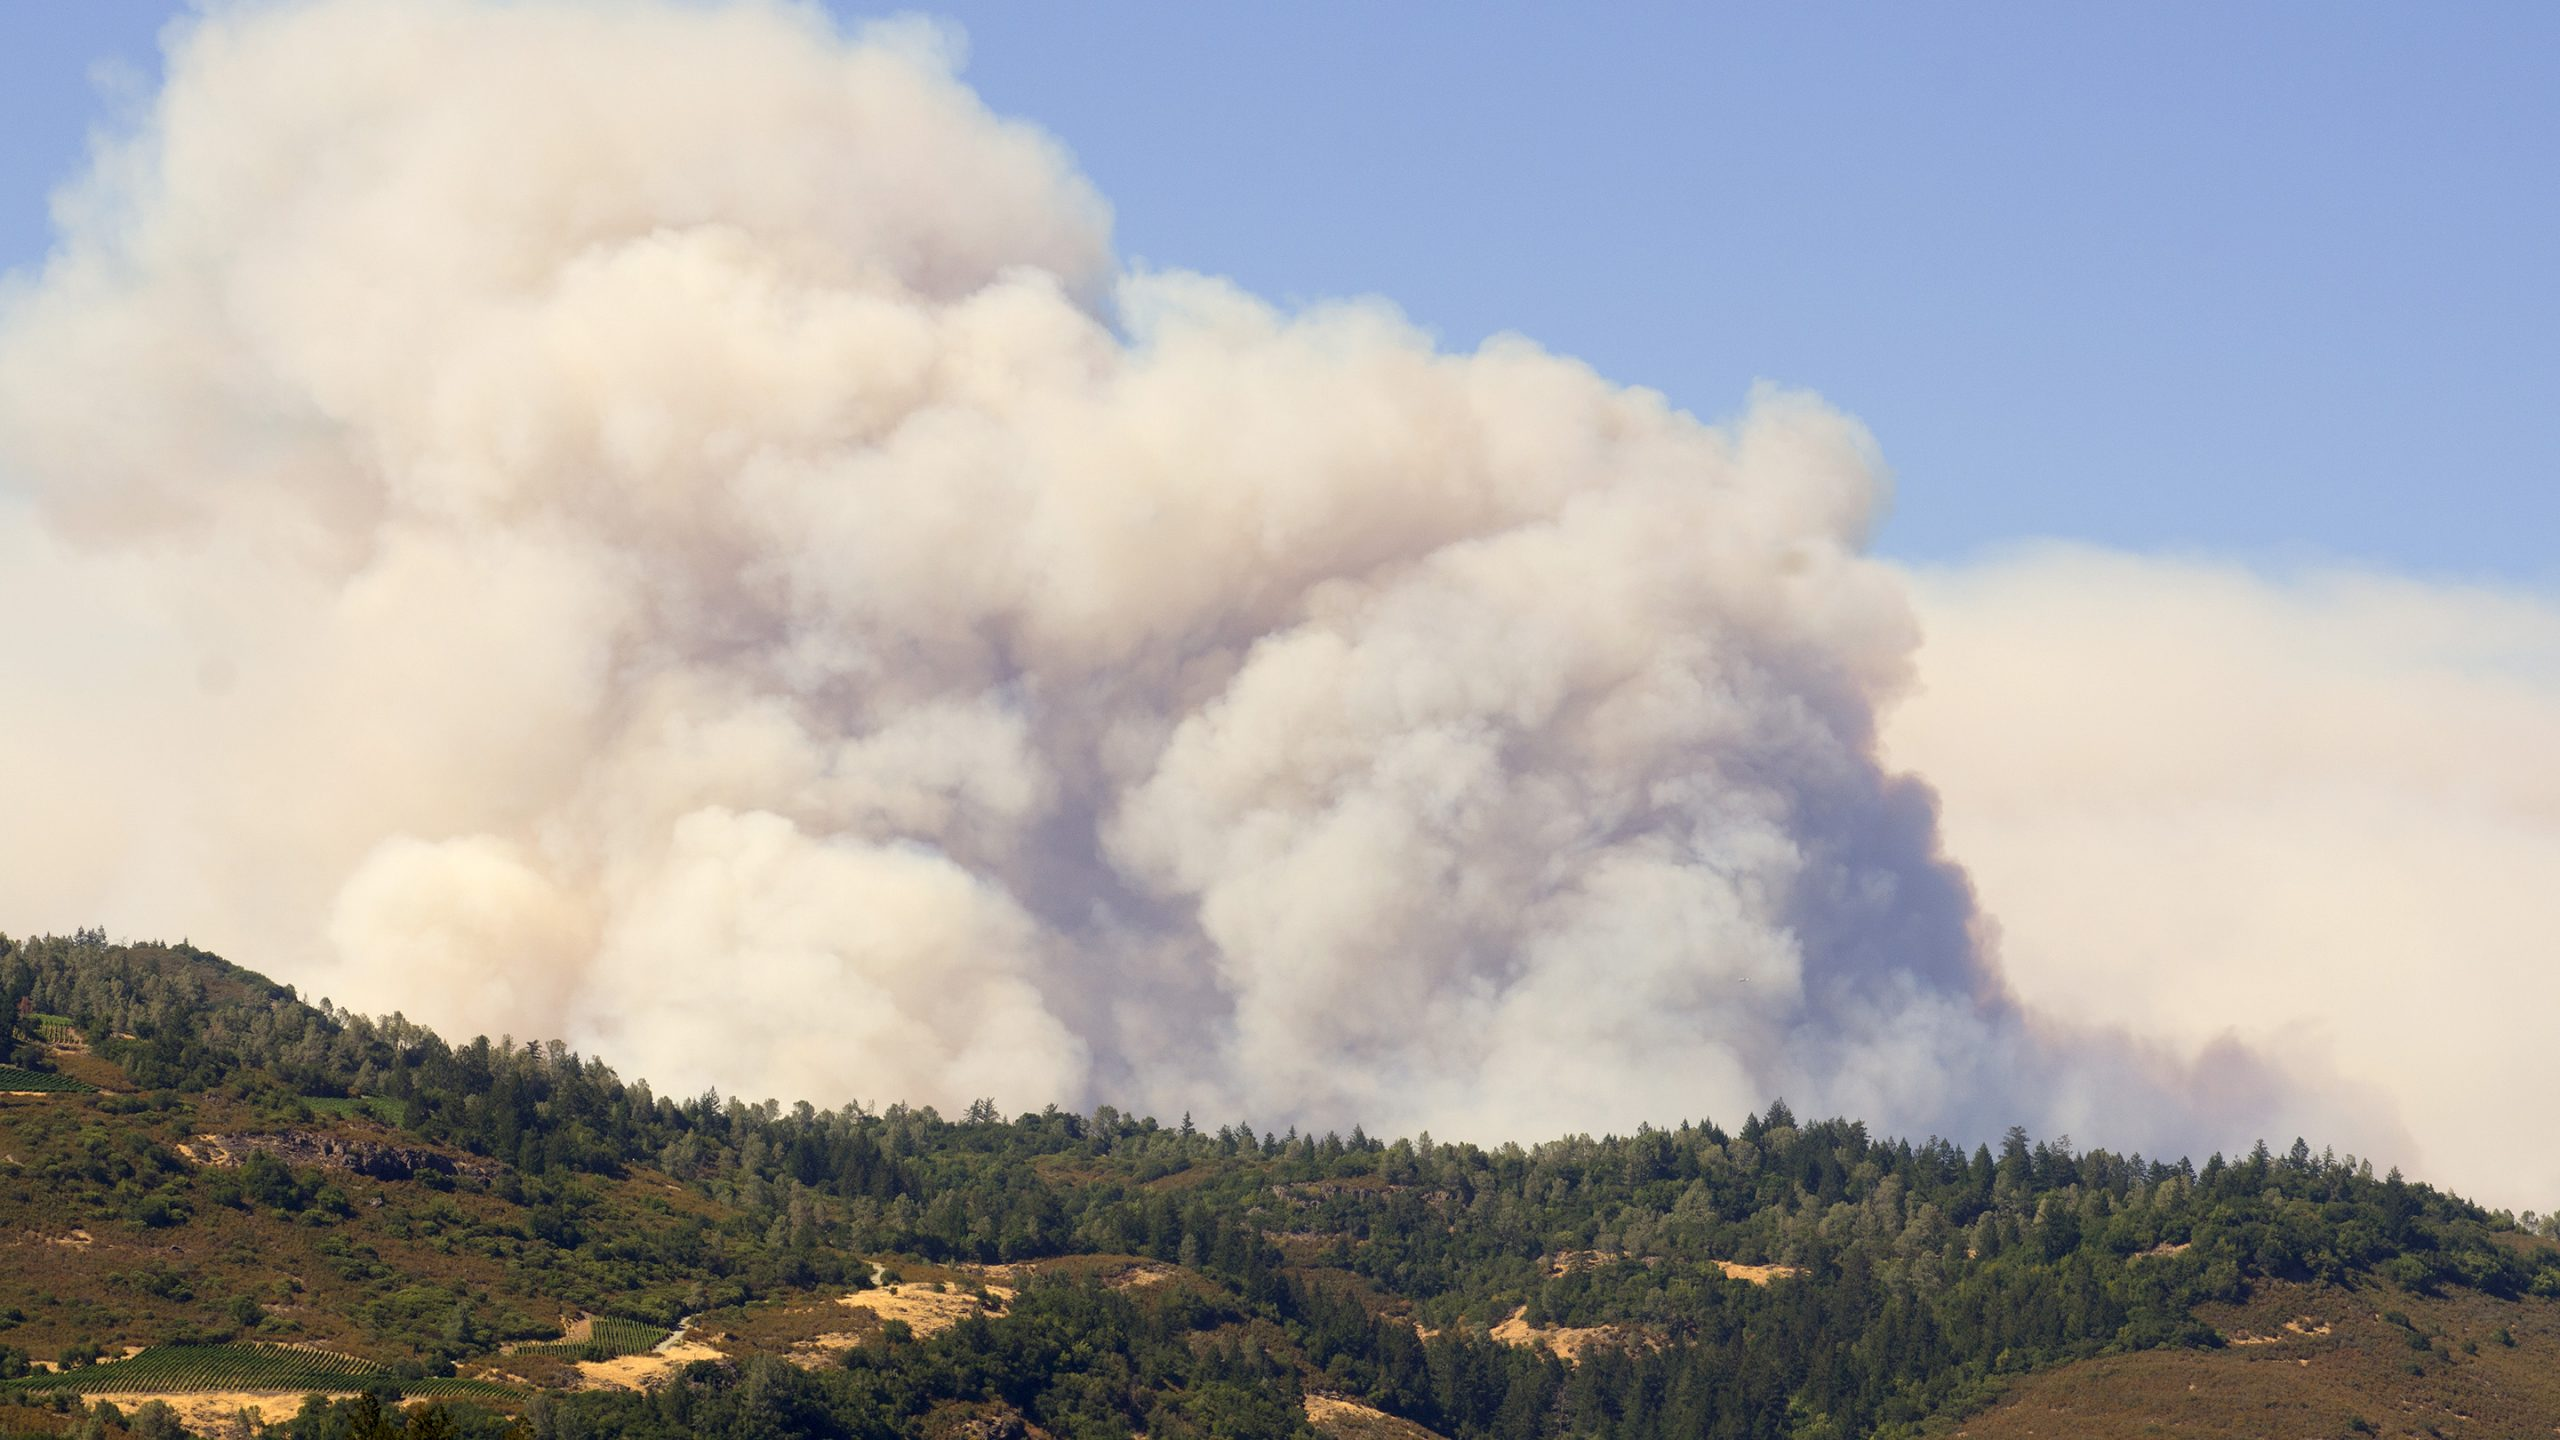 High Temperatures, High Winds, High Fire Danger Continues